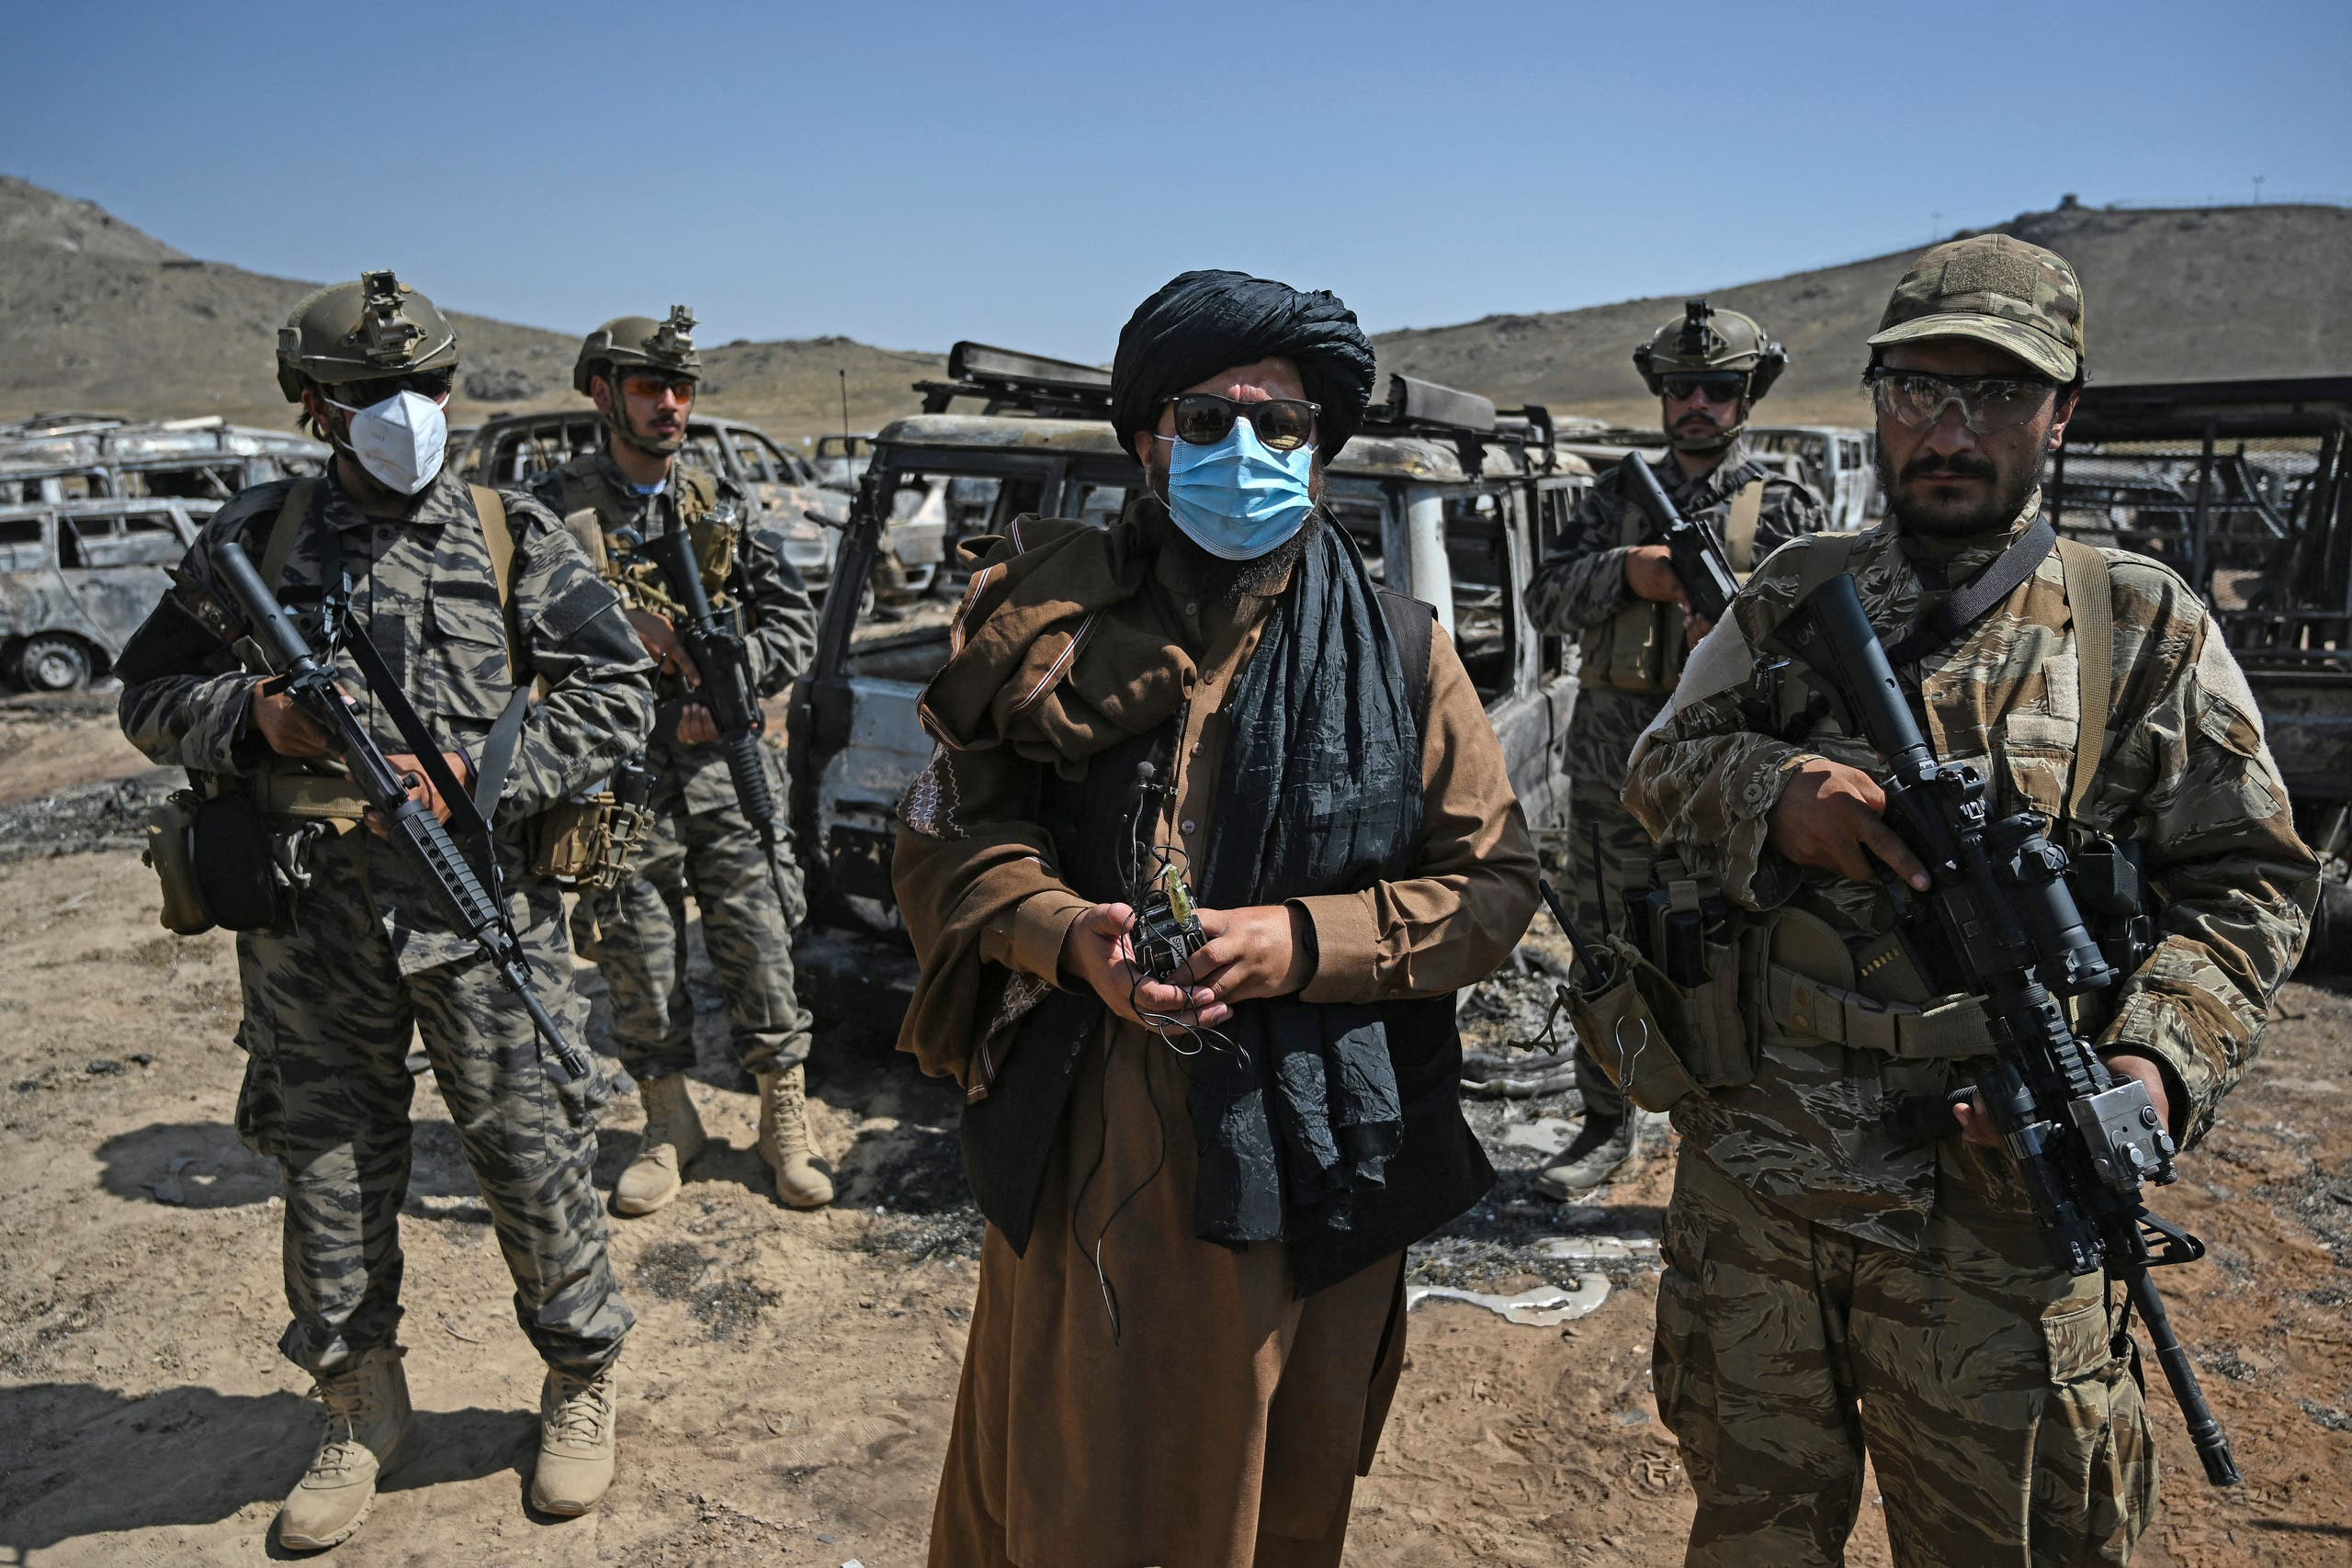 Members of the Taliban Badri 313 military unit stand beside damaged and discarded vehicles parked near the destroyed Central Intelligence Agency (CIA) base in Deh Sabz district northeast of Kabul on September 6, 2021 after the US pulled all its troops out of the country. (File photo: AFP)